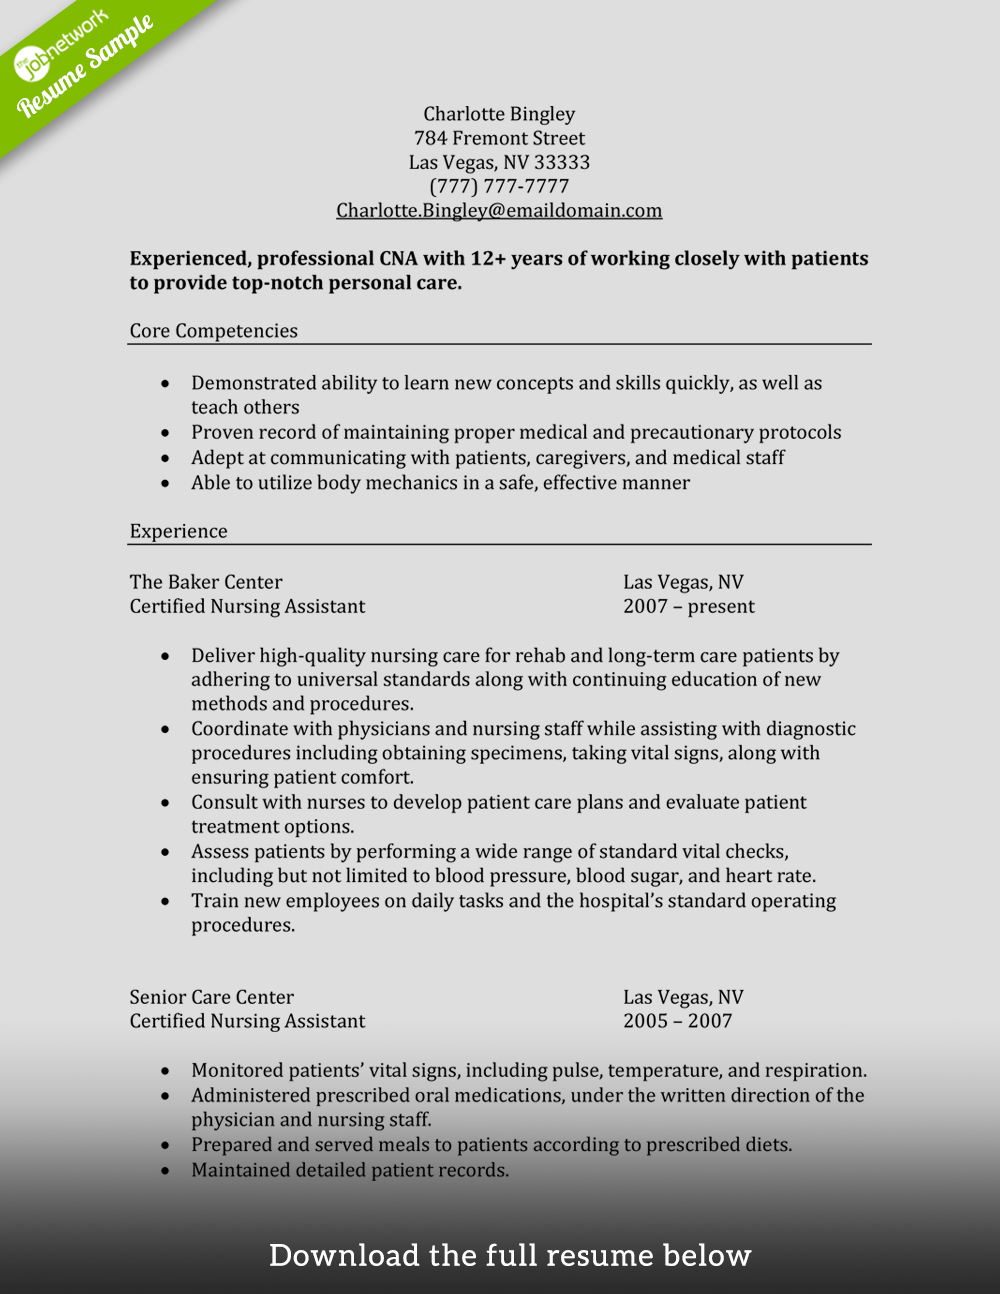 resume for cna position